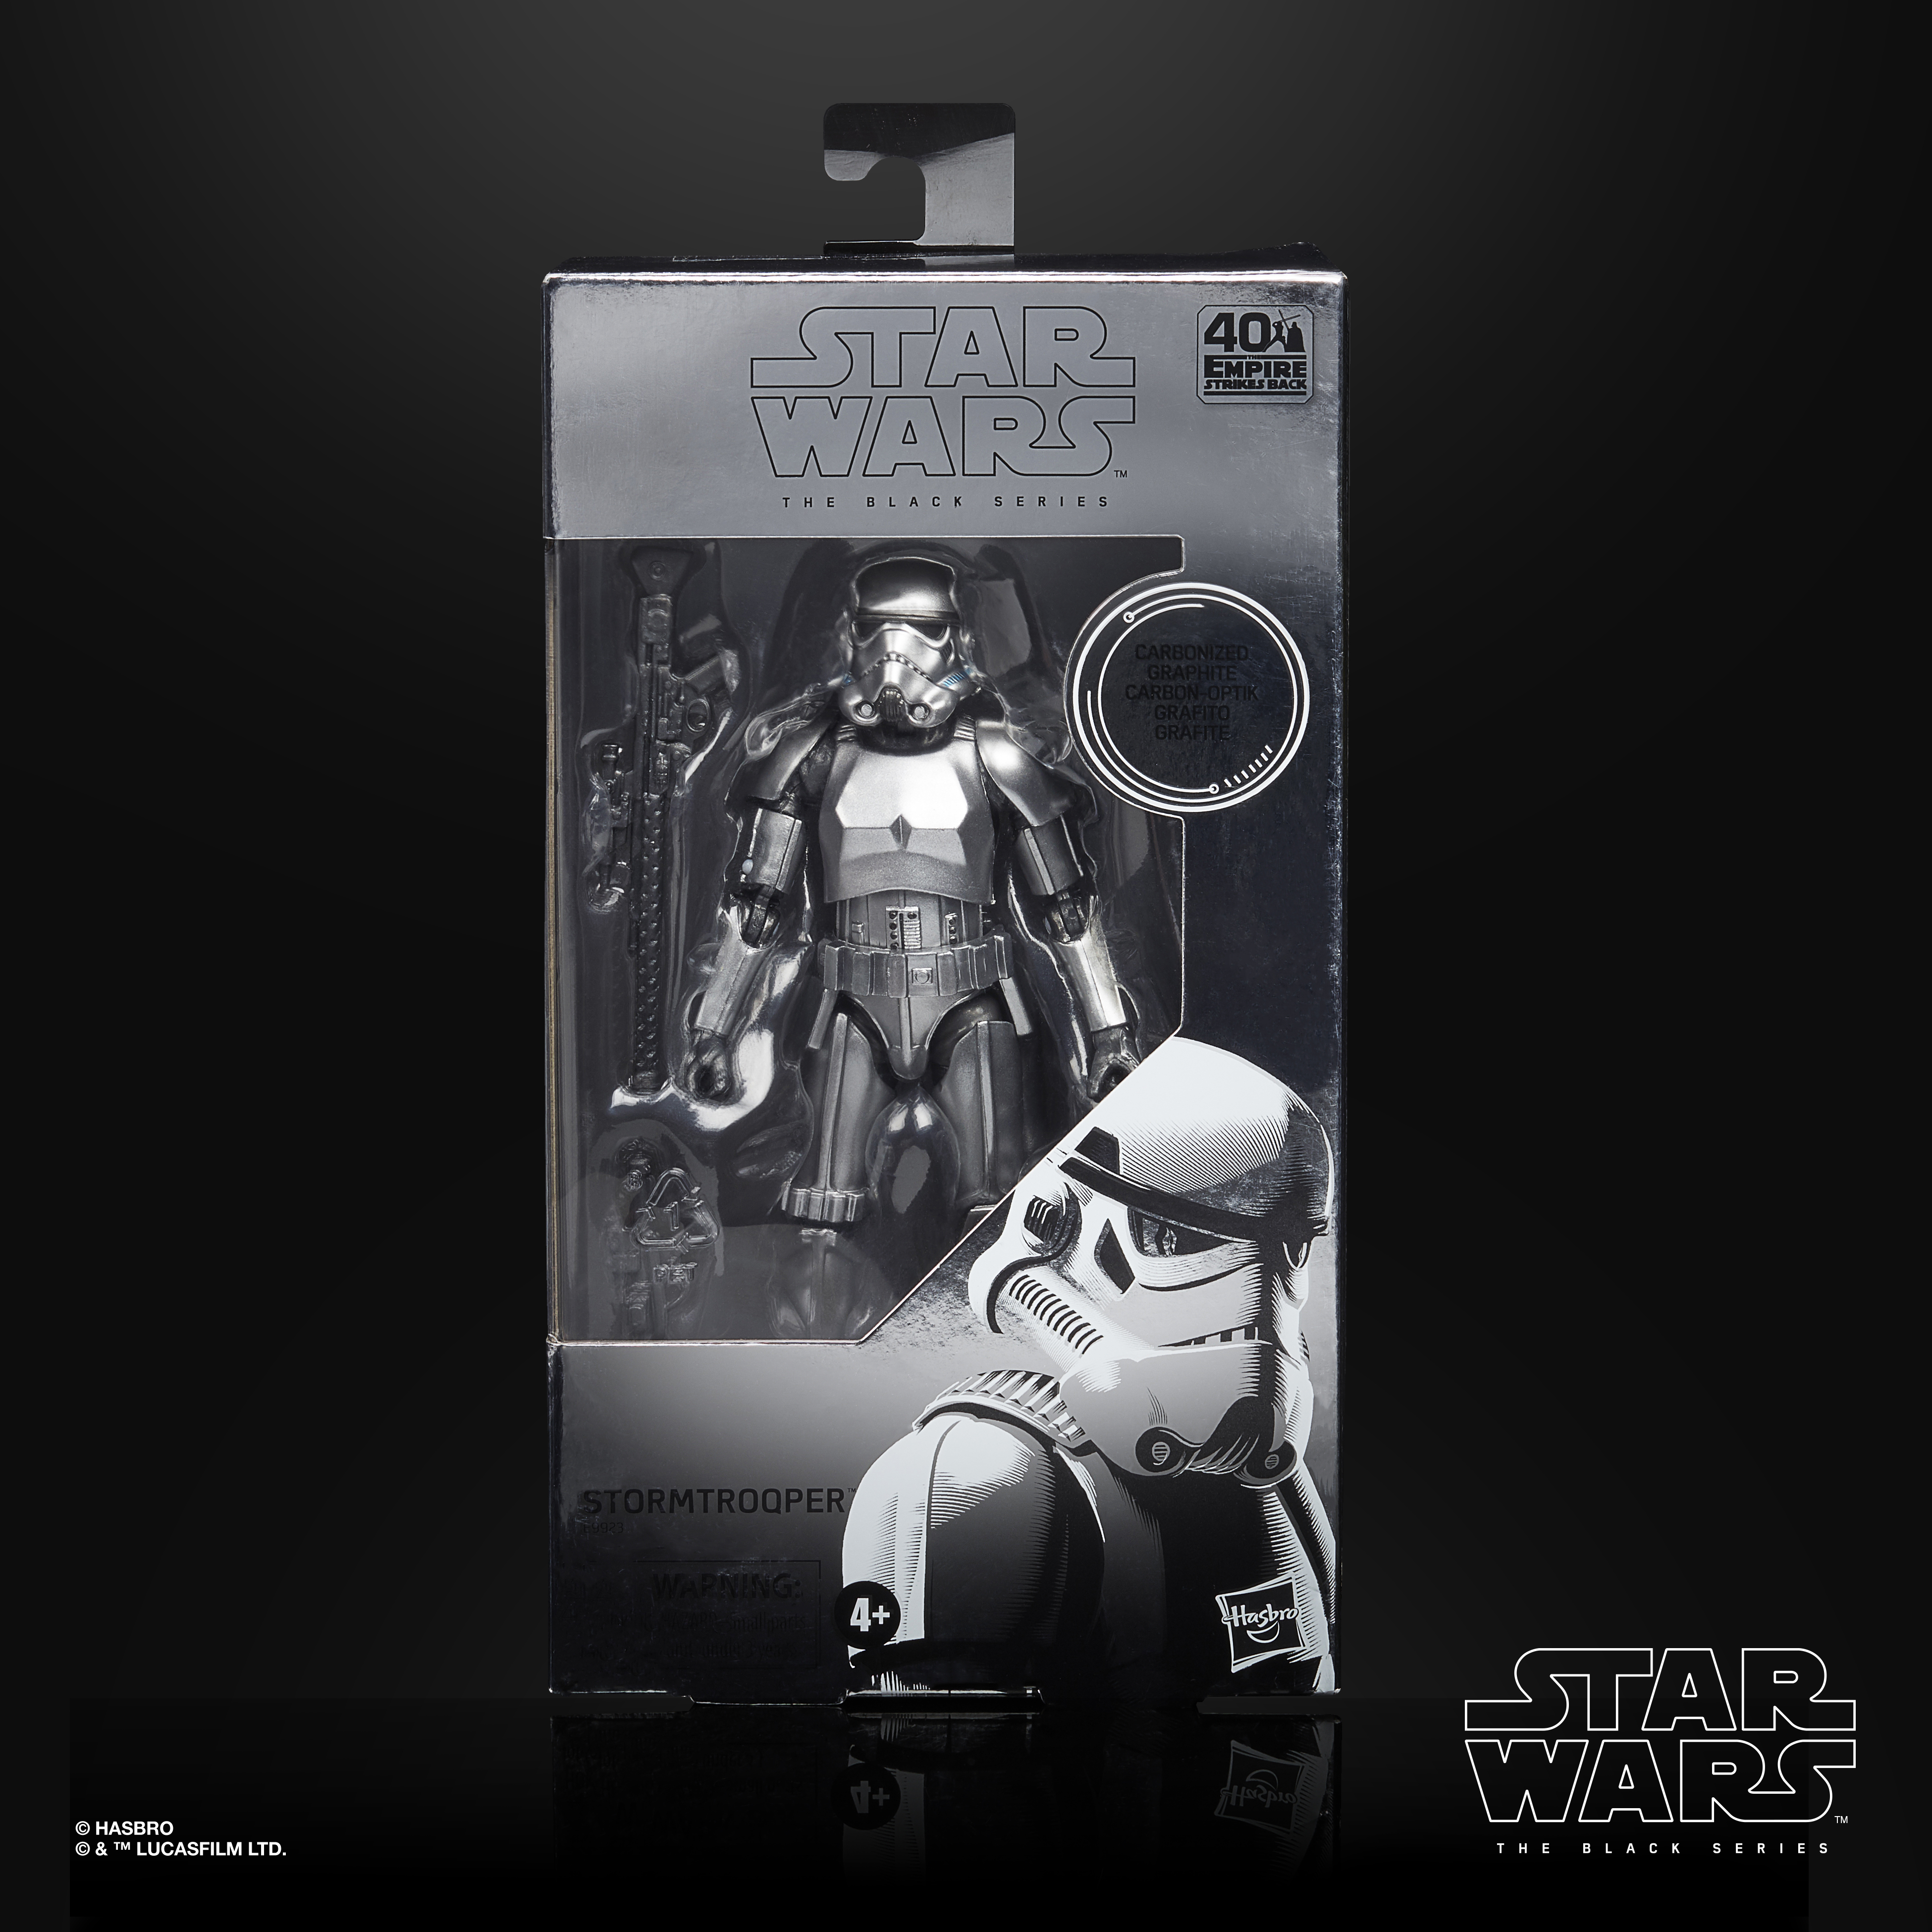 "Star Wars The Black Series Stormtrooper Carbonized Action Figure 6"" Reihe E9923 5010993734474"